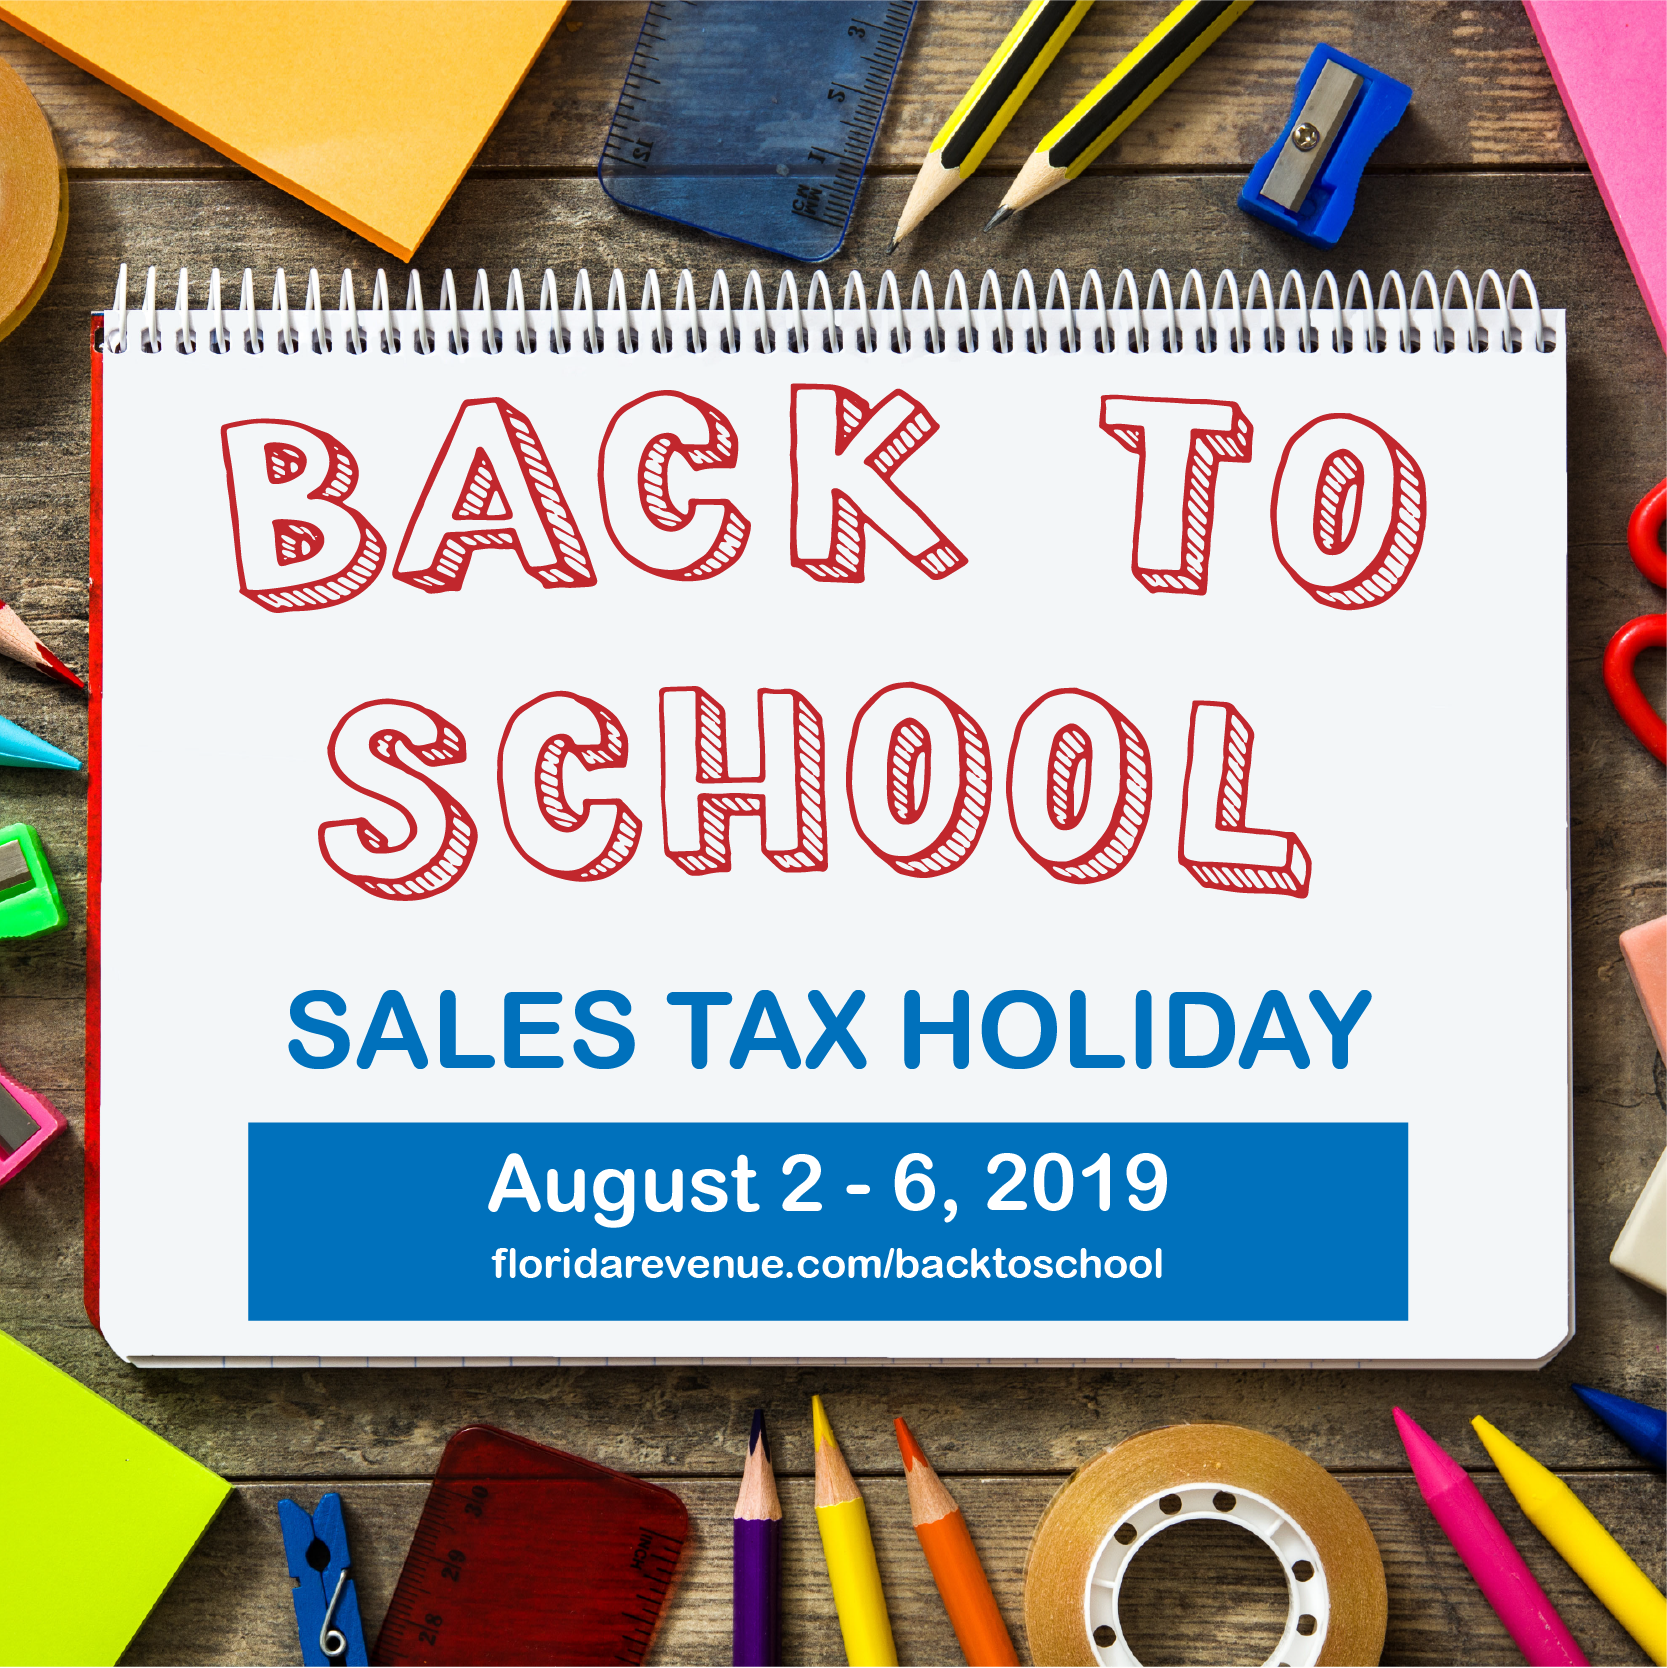 Florida Back to School Sales Tax Holiday